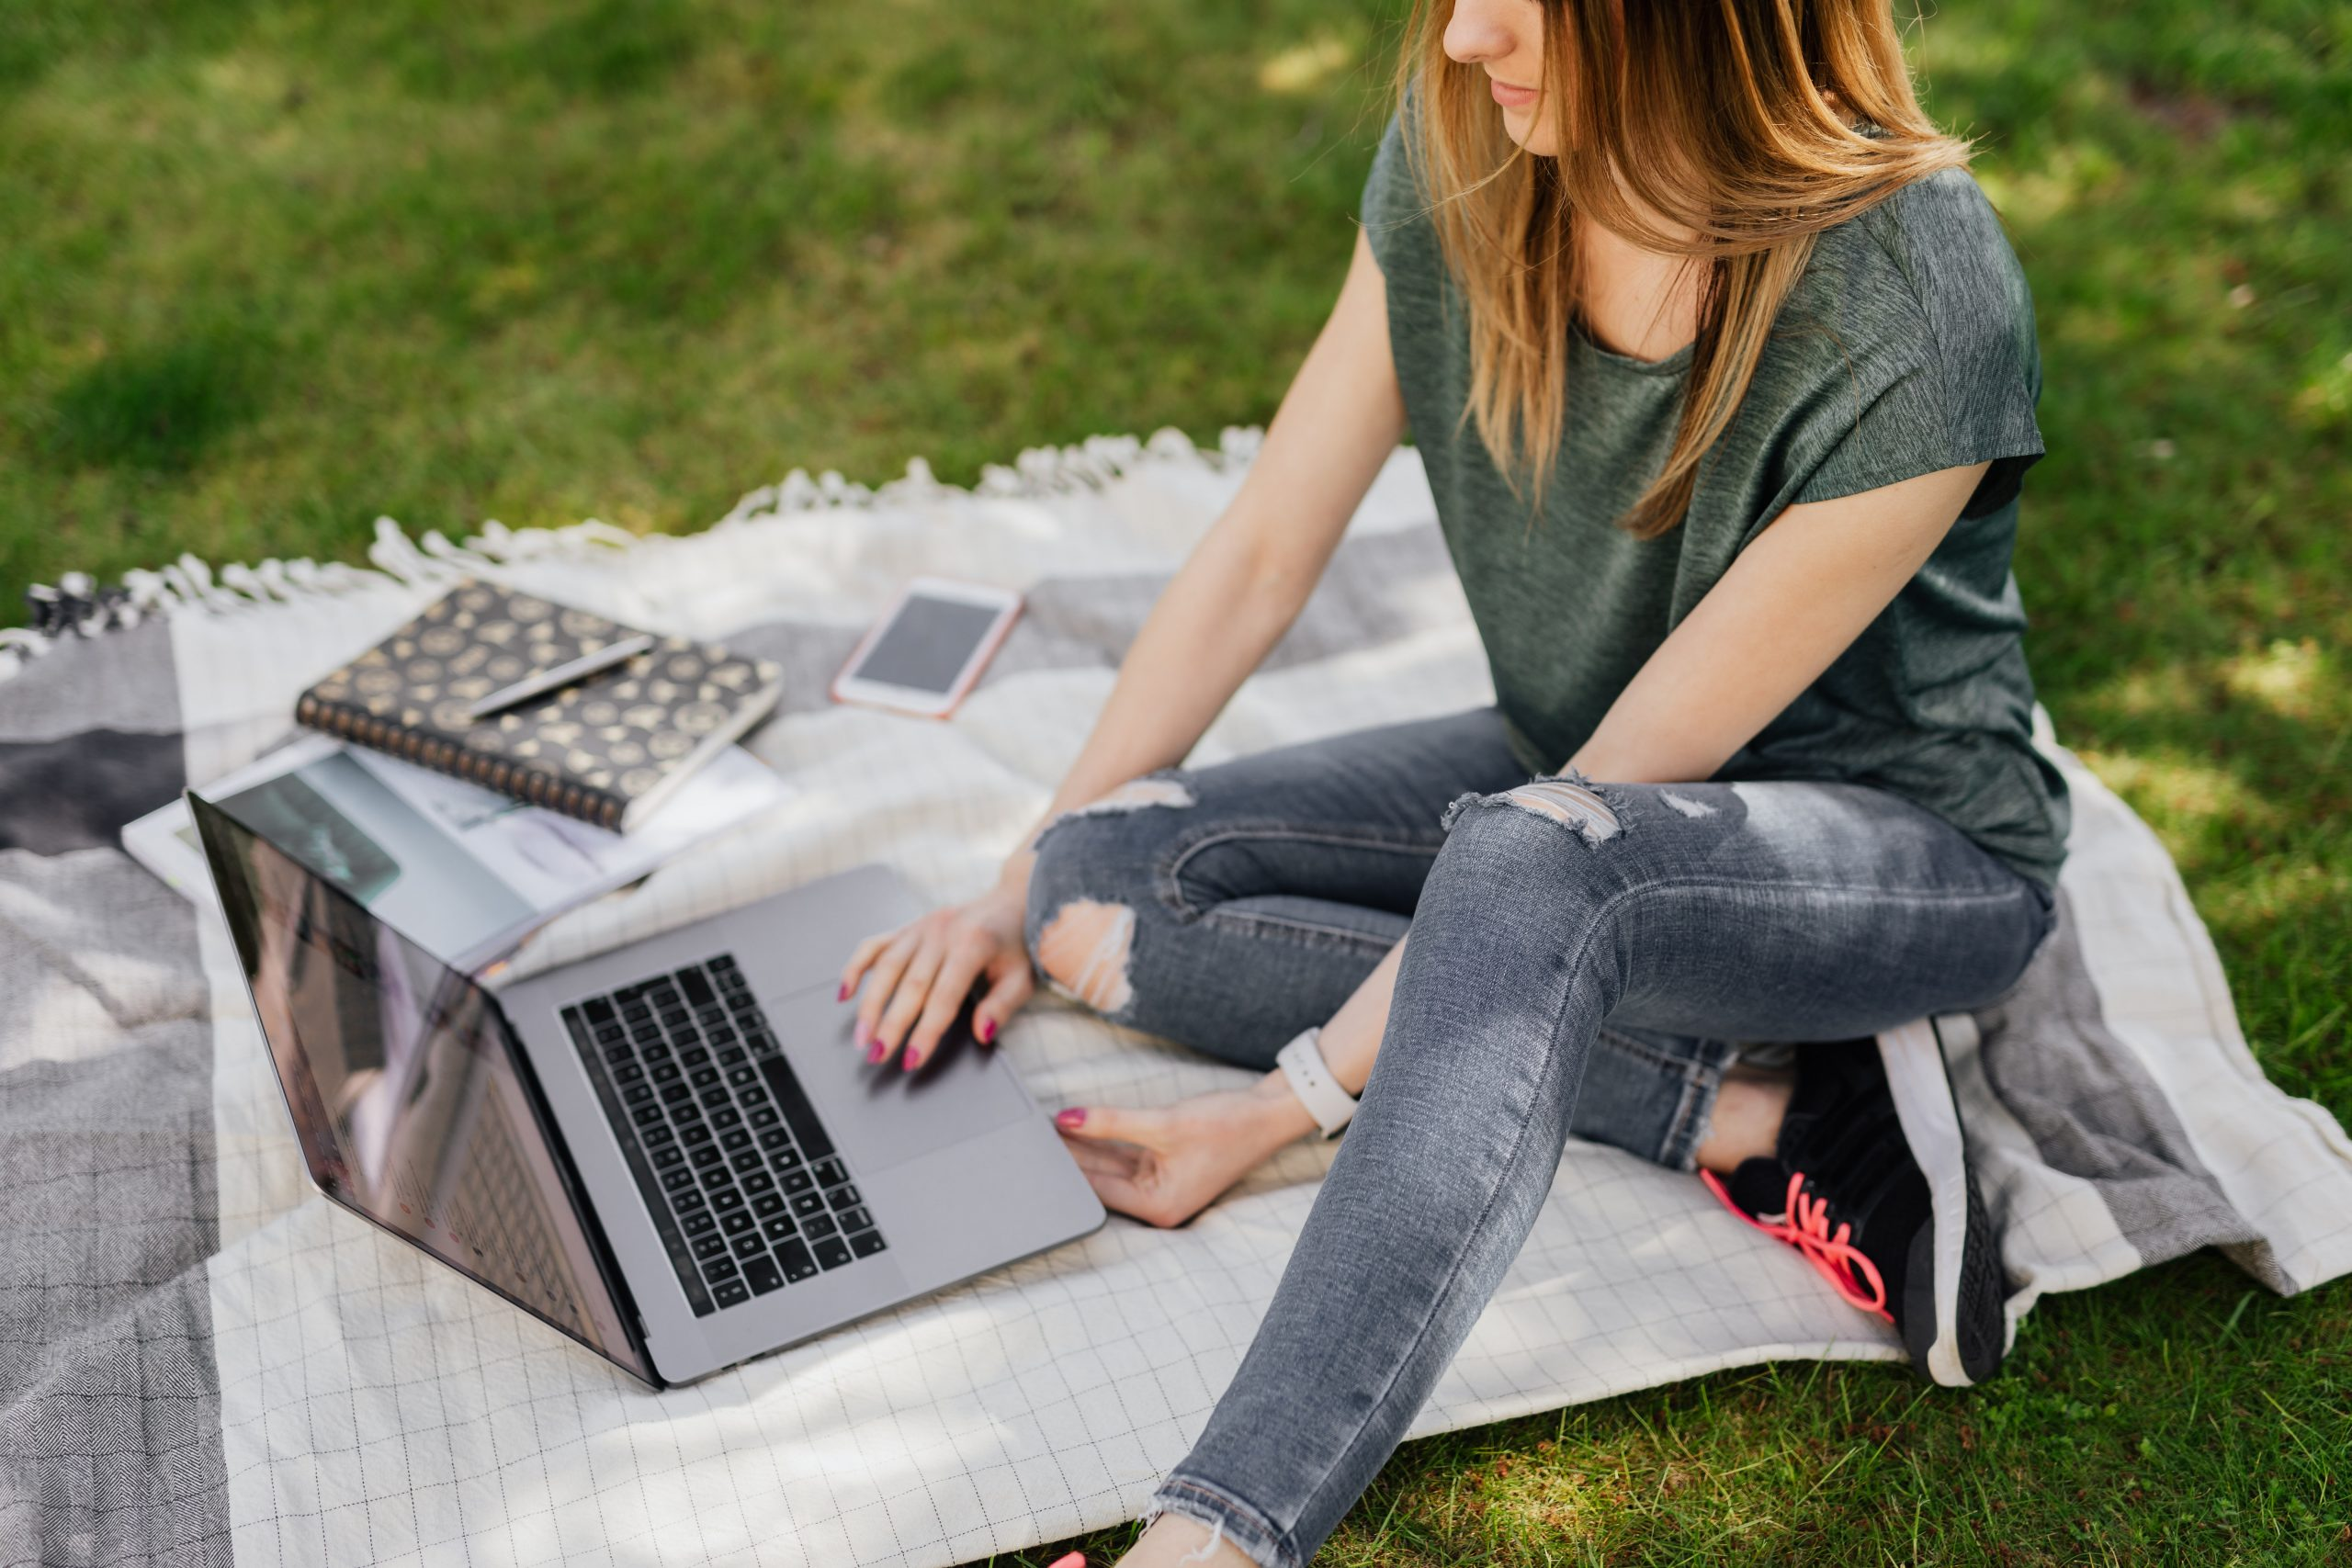 College student studying outside on campus